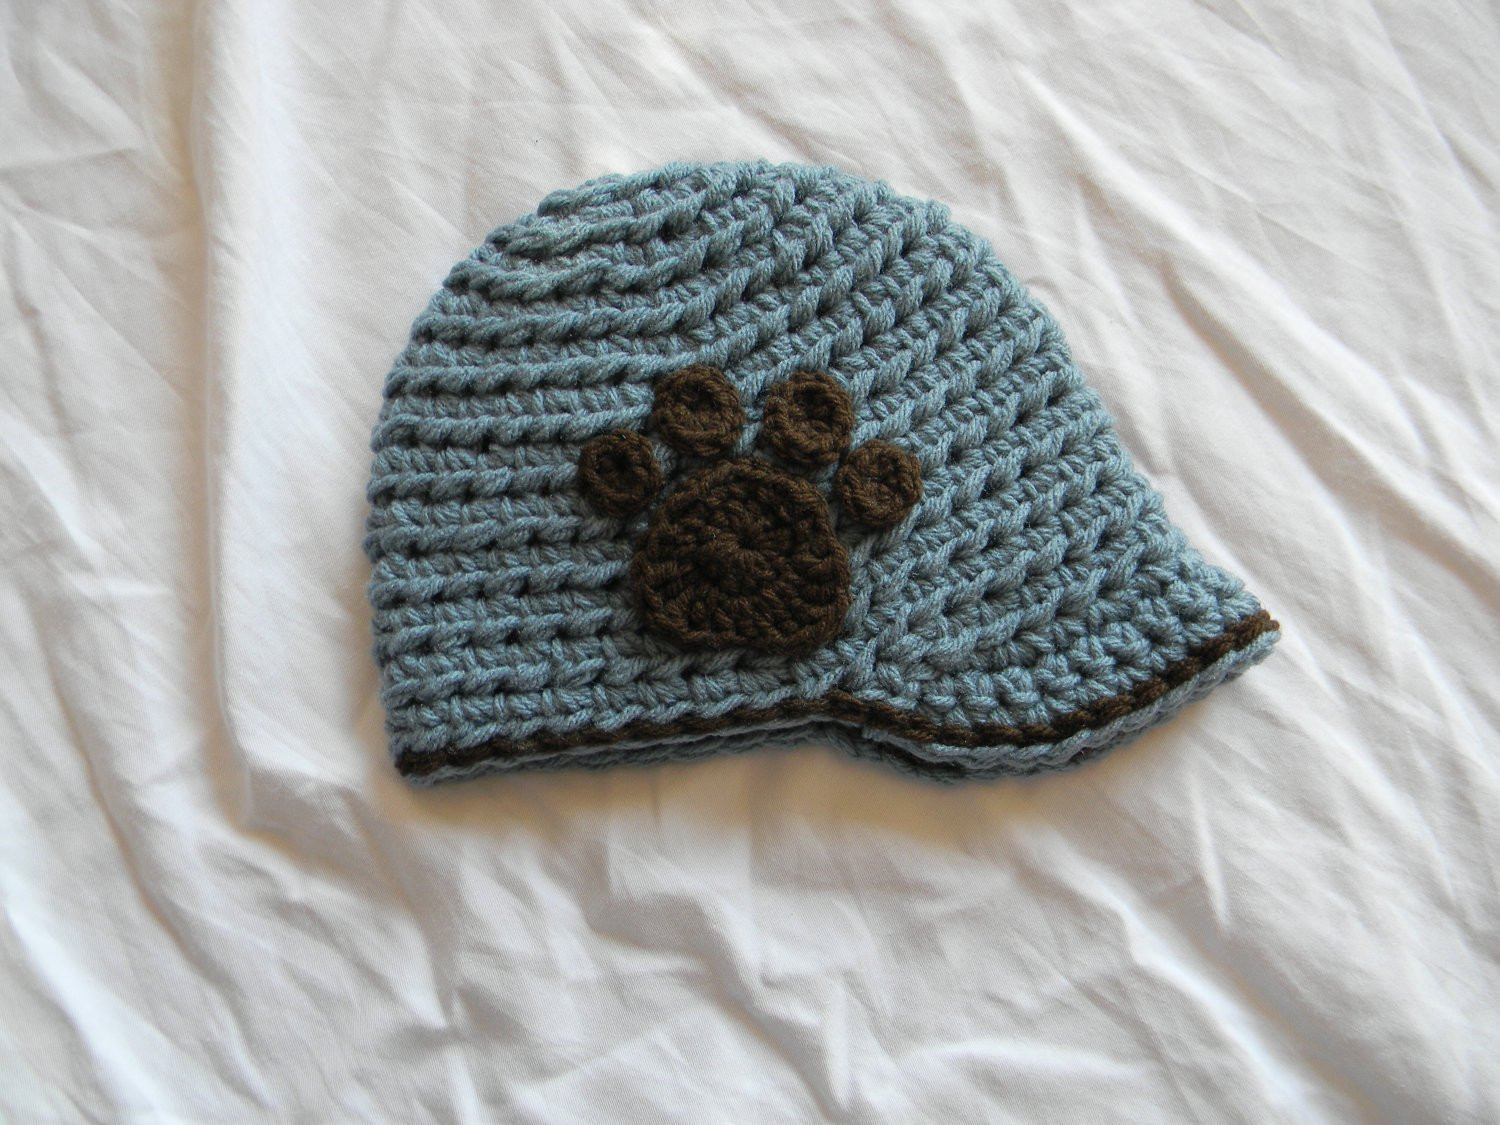 Crochet Hat with Brim Awesome Crochet Pattern Inside Track Brimmed Cap with Paw Print or Of Marvelous 46 Ideas Crochet Hat with Brim